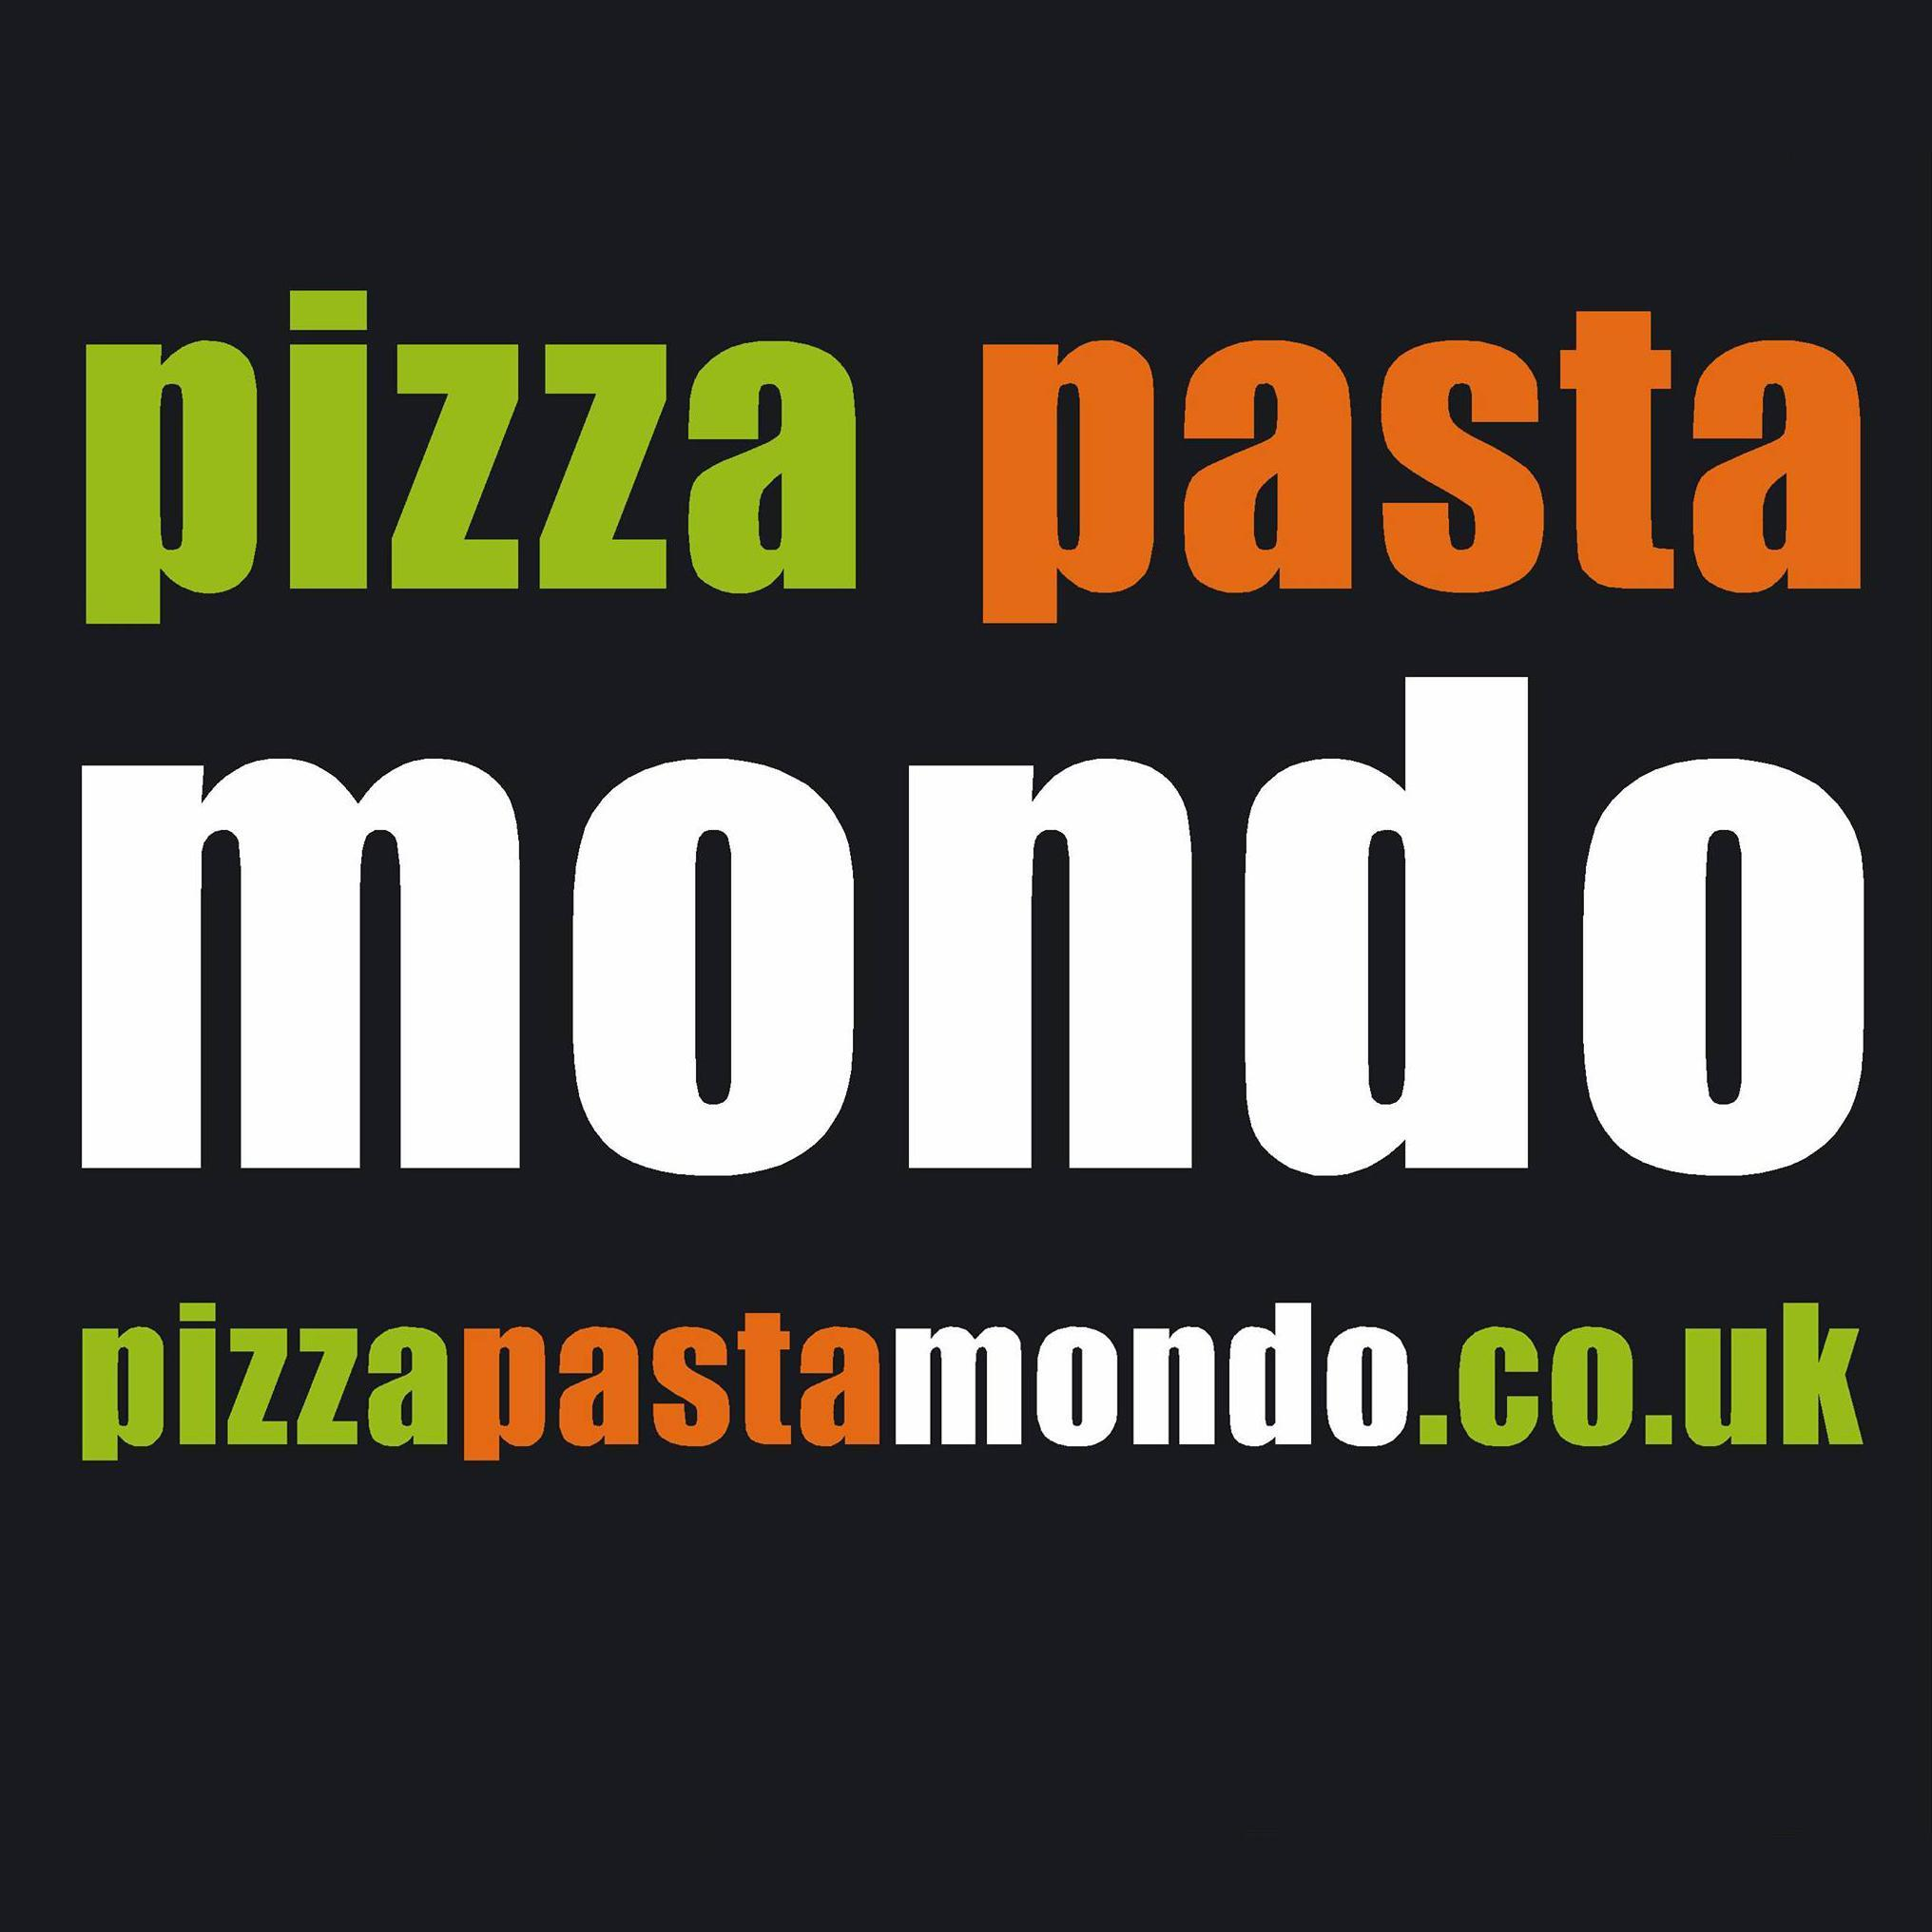 Pizza Pasta Mondo At Pizzapastamondo Twitter